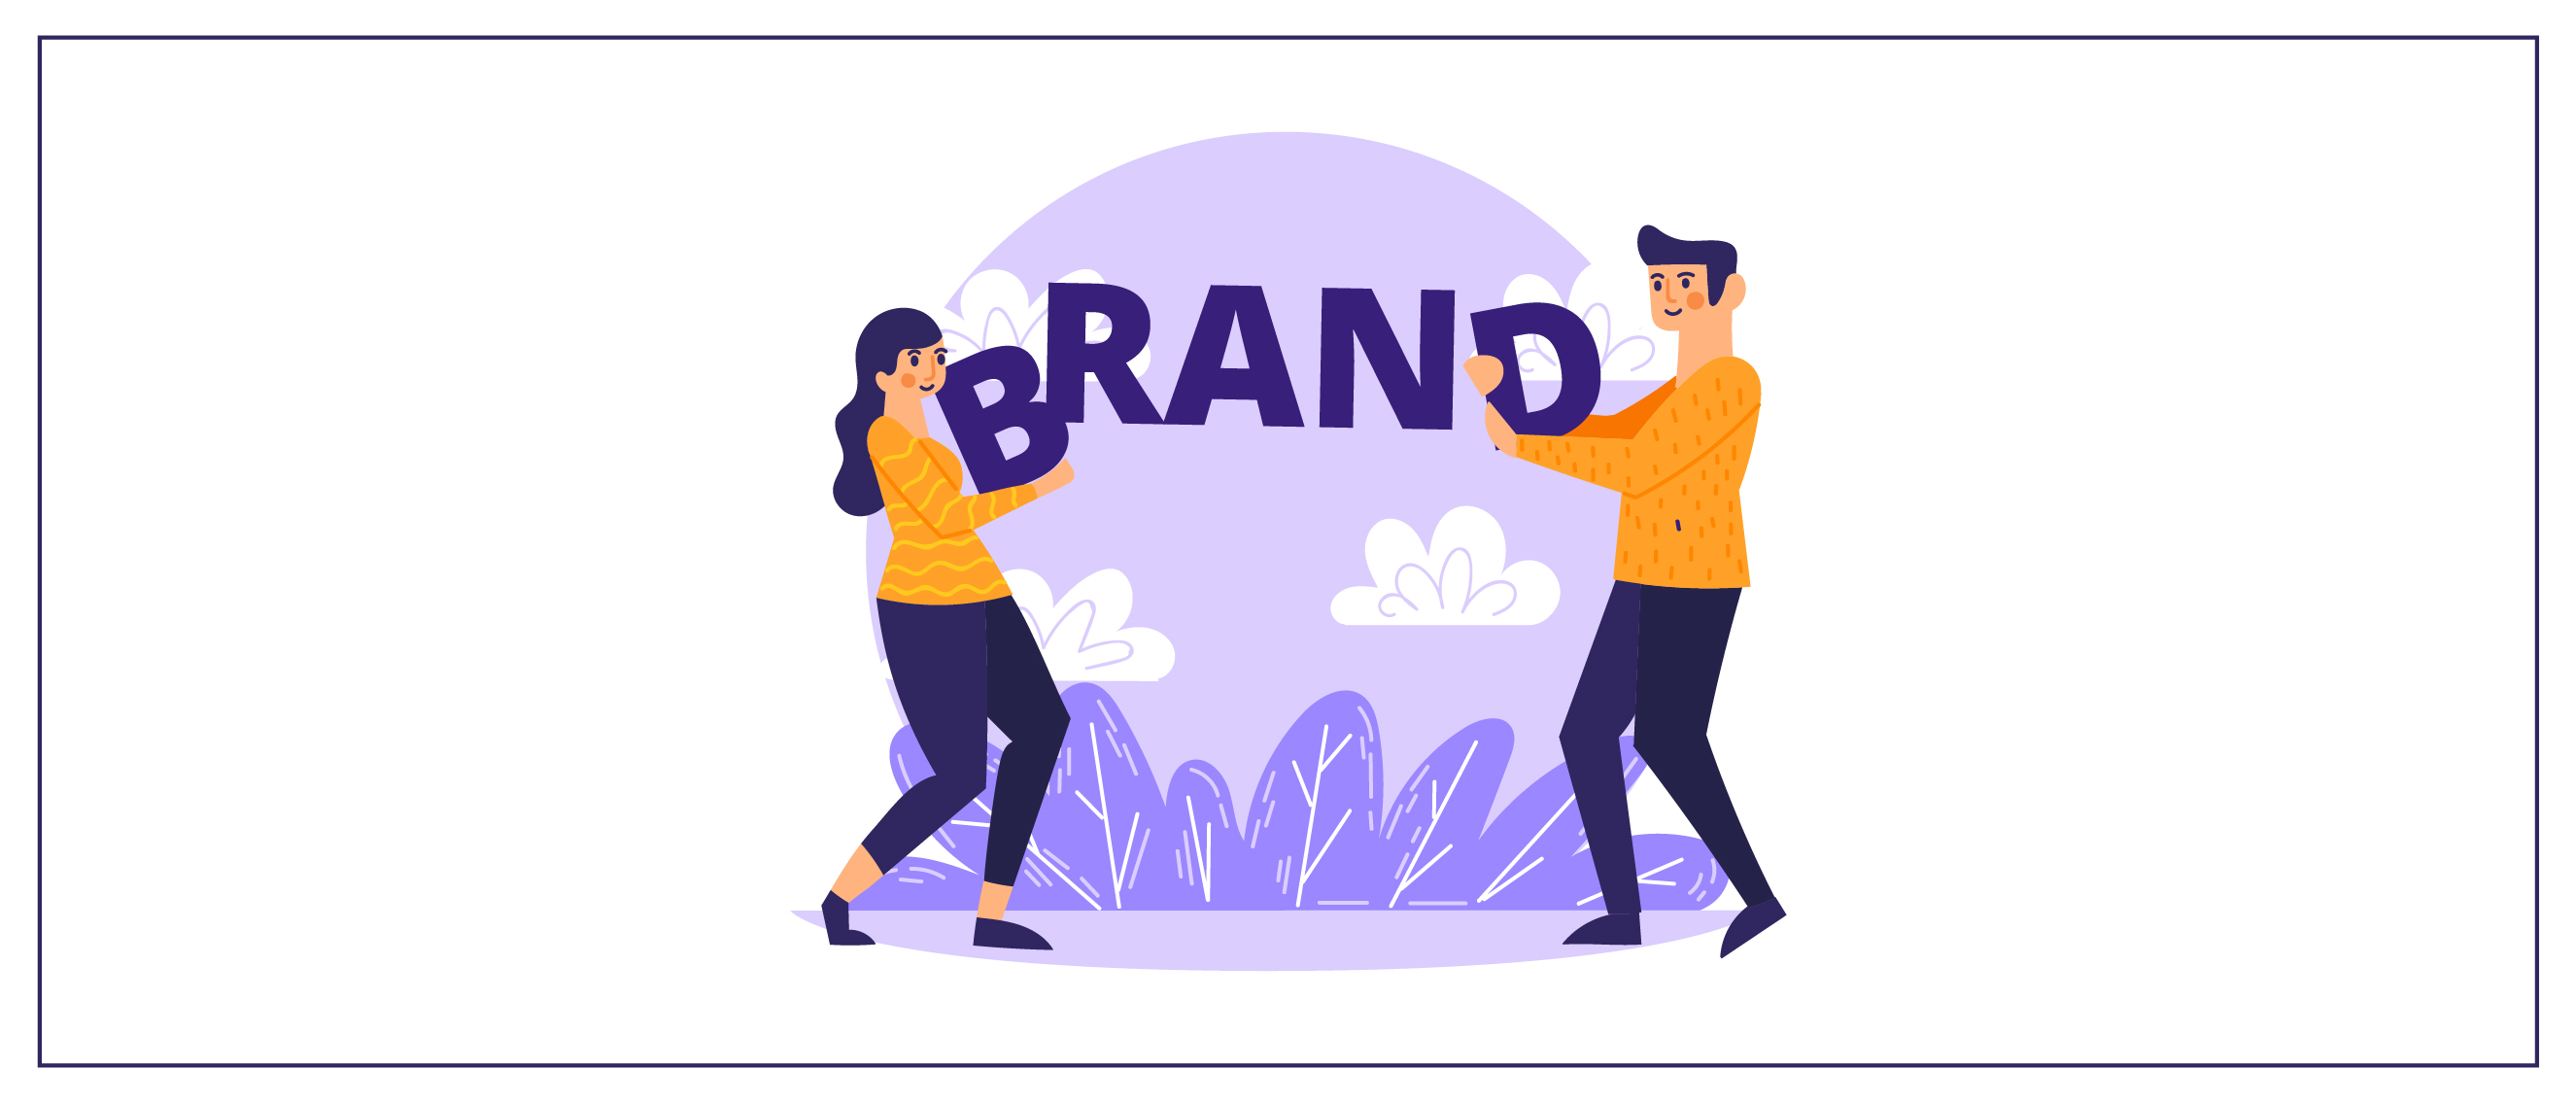 Why brands need to have a personality